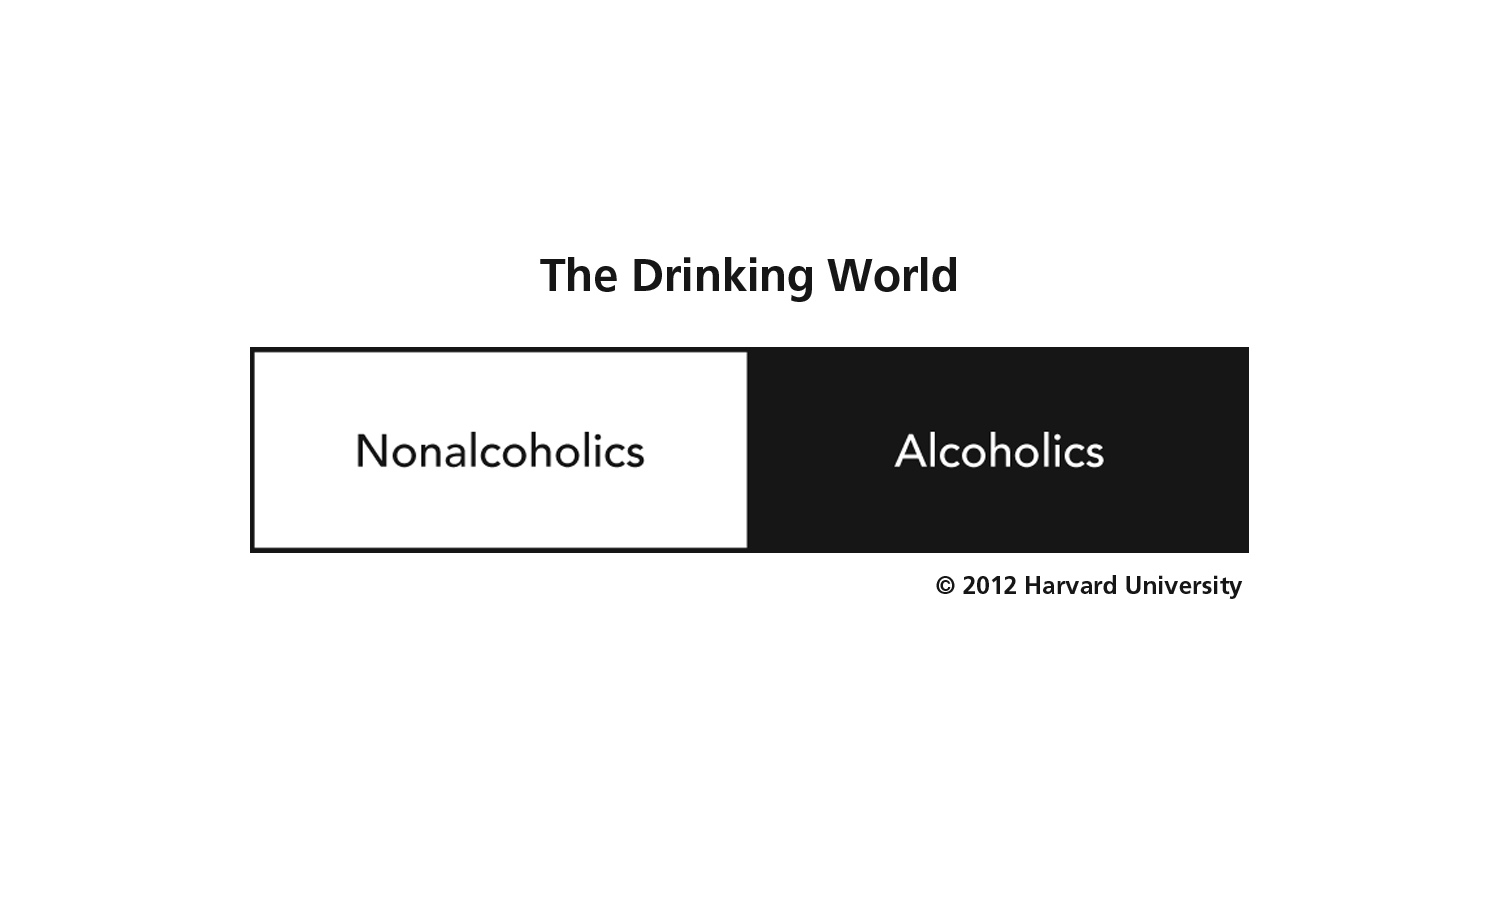 The Myth Of Fine Line Between Healthy And Unhealthy Drinking Lock Diagram Quotes 2012 05 30 Almostalcoholicbwdiagram